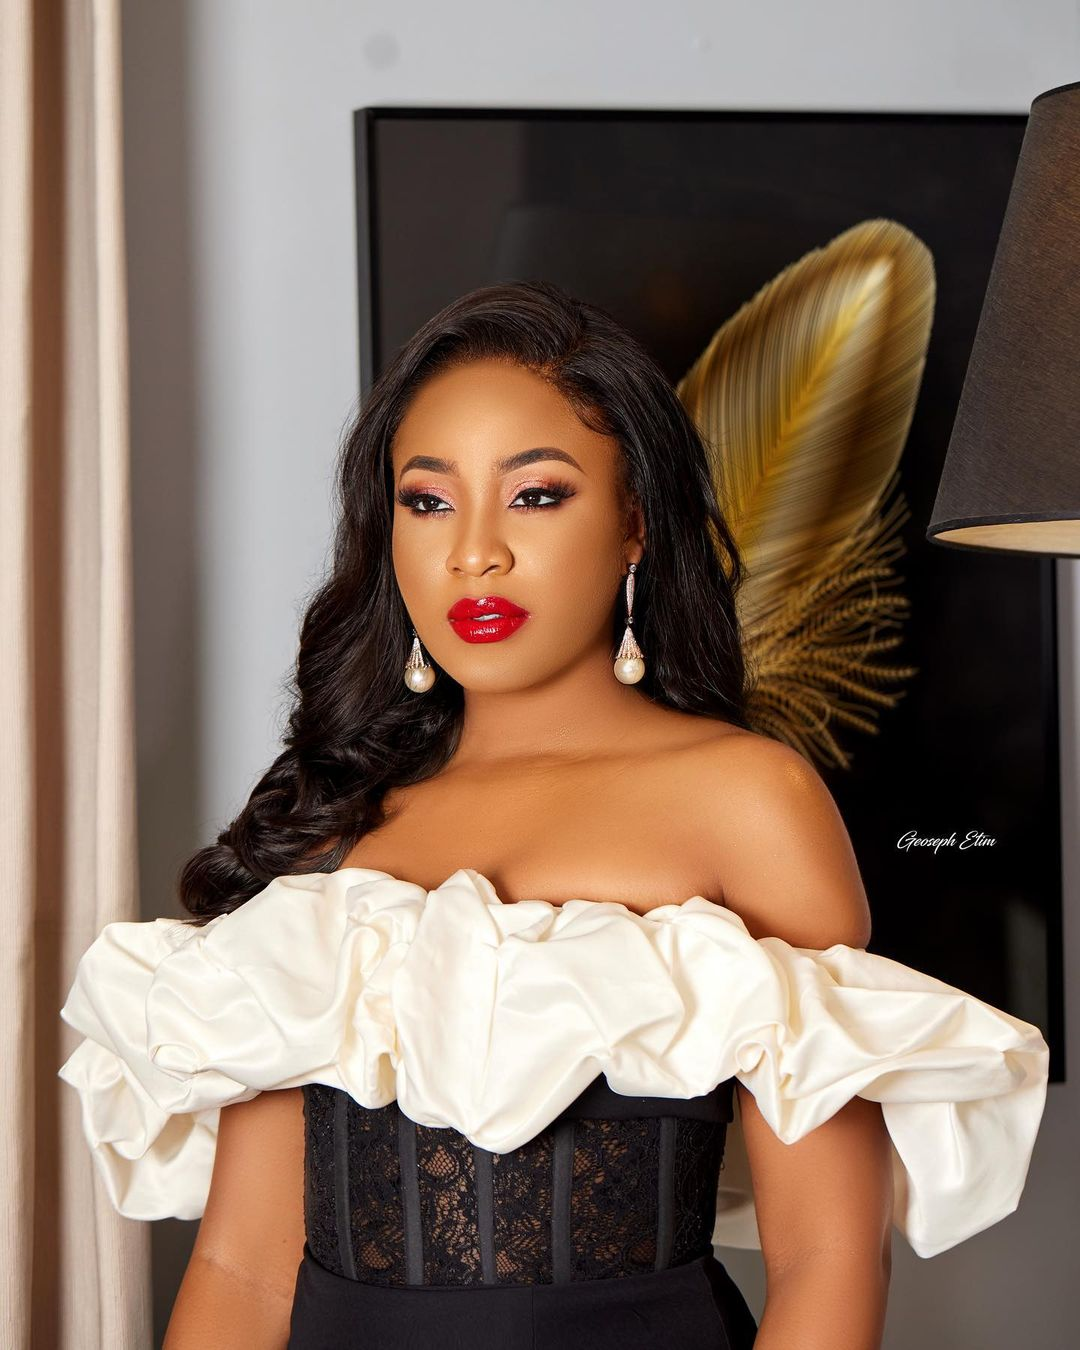 How BBNaija Star, Erica Reacted After A Troll Publicly Condemned Her Reality Show